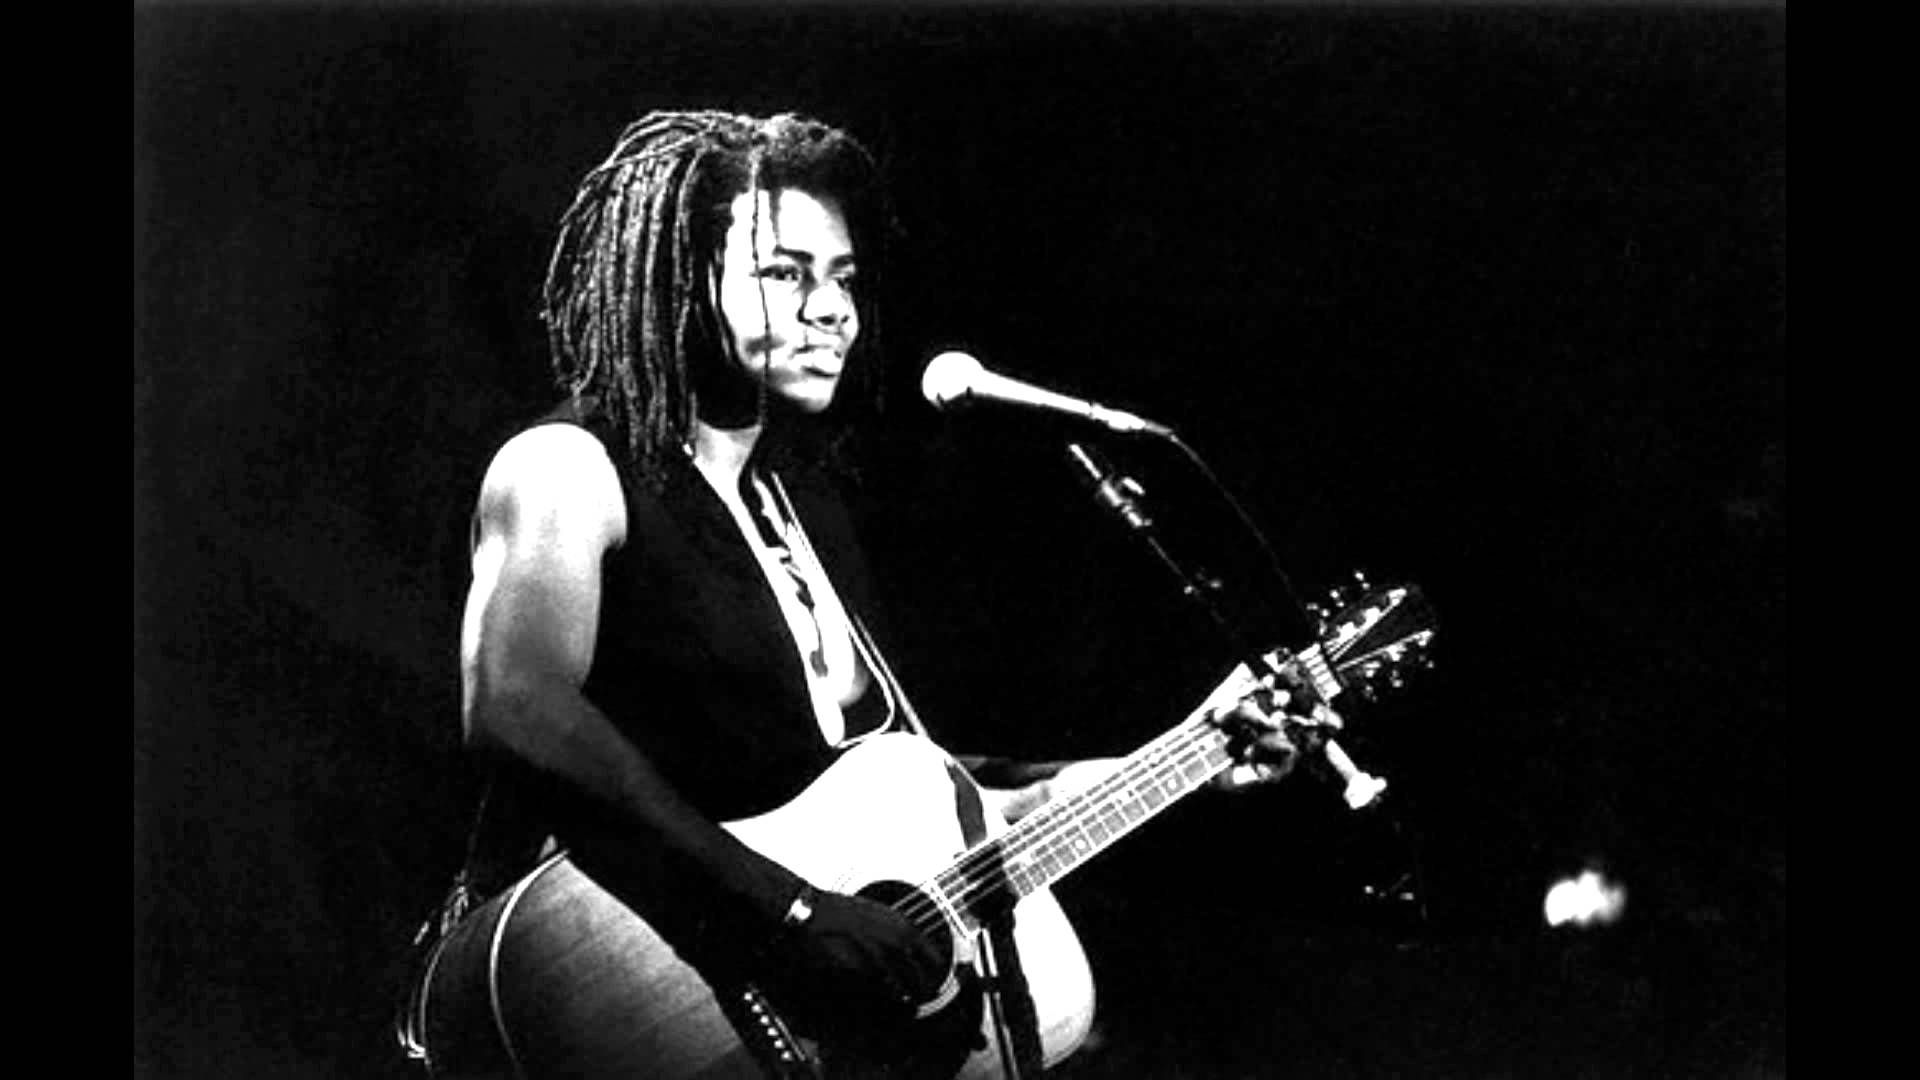 tracy chapman live in concert